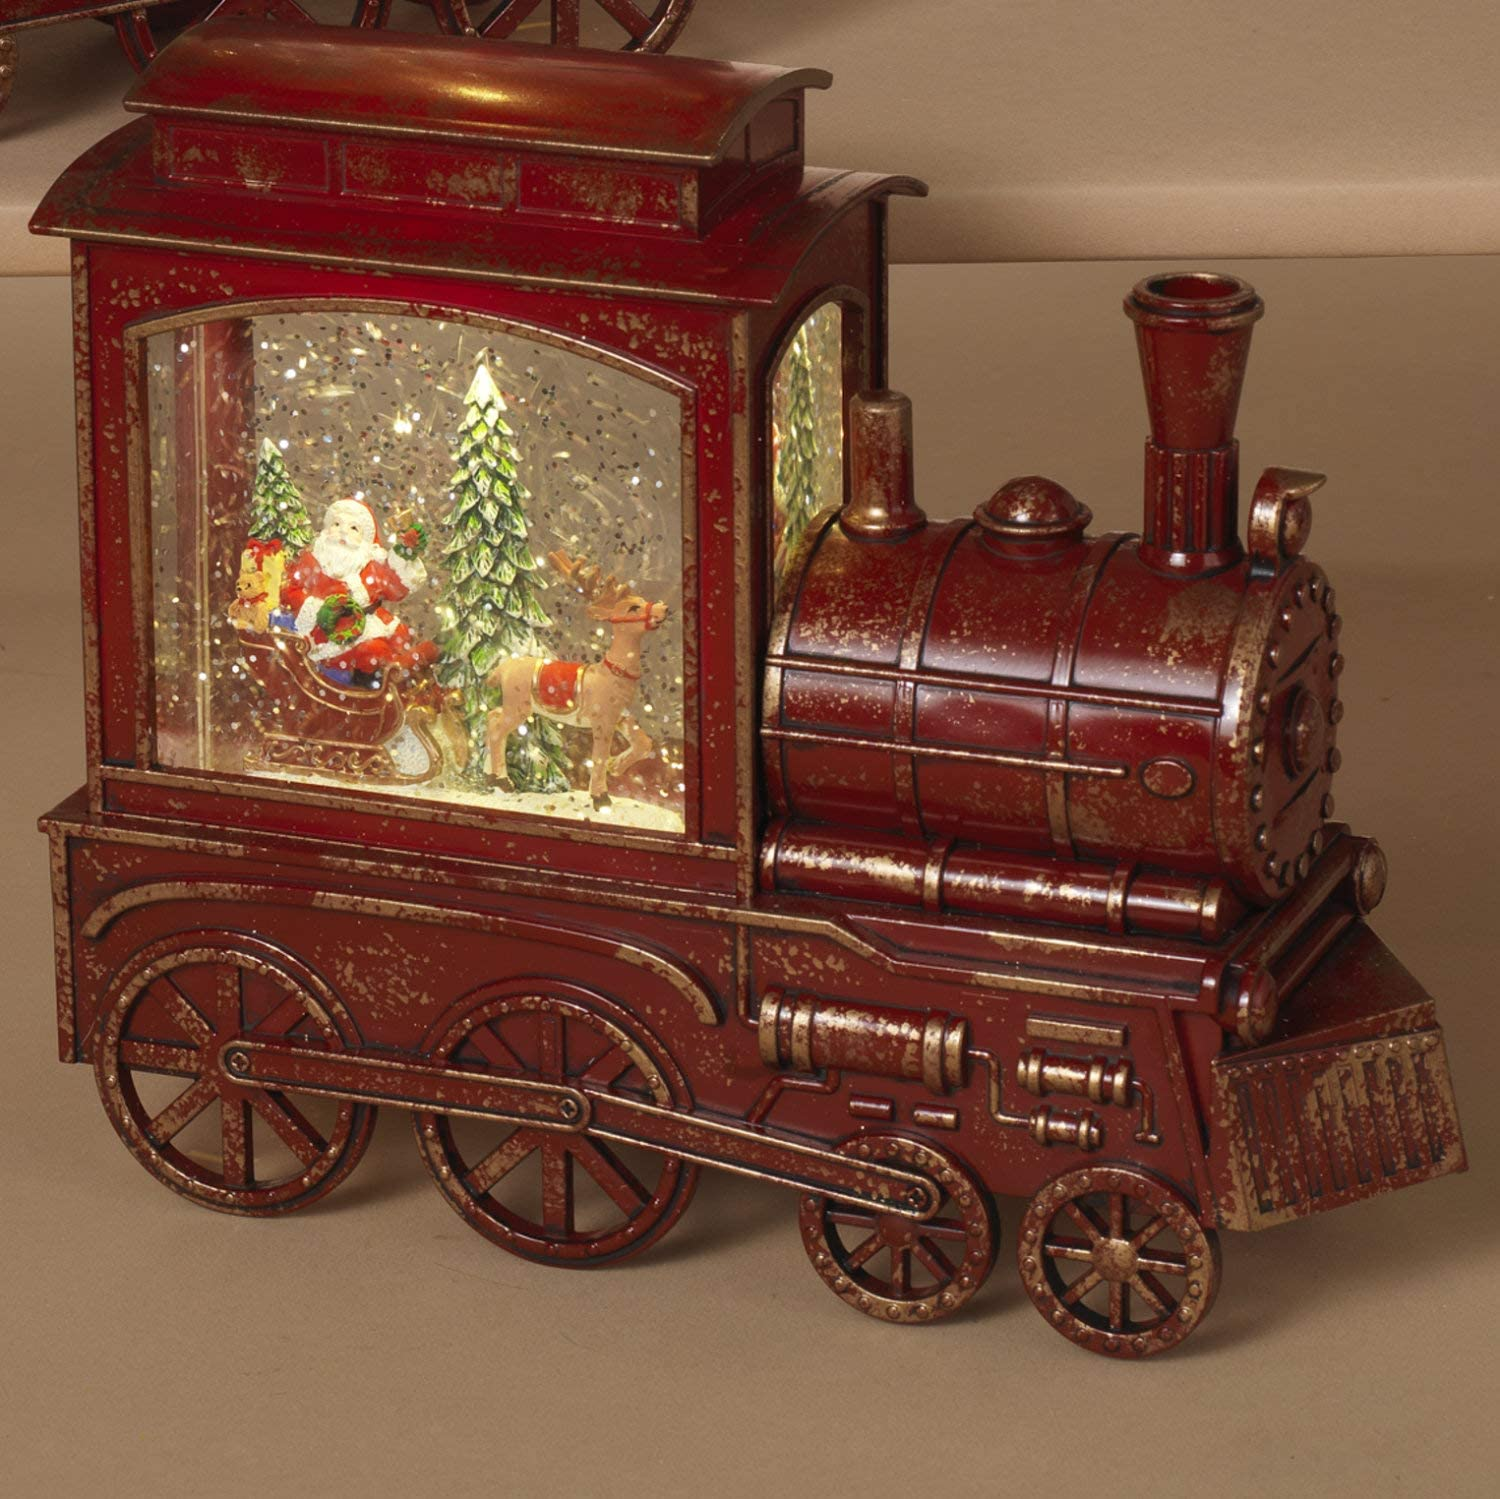 Lighted Red Train Christmas Snow Globe with Holiday Santa Scene and Timer – Light-Up Water Lantern Decoration – Tabletop Winter Home Decor with Festive Figurines